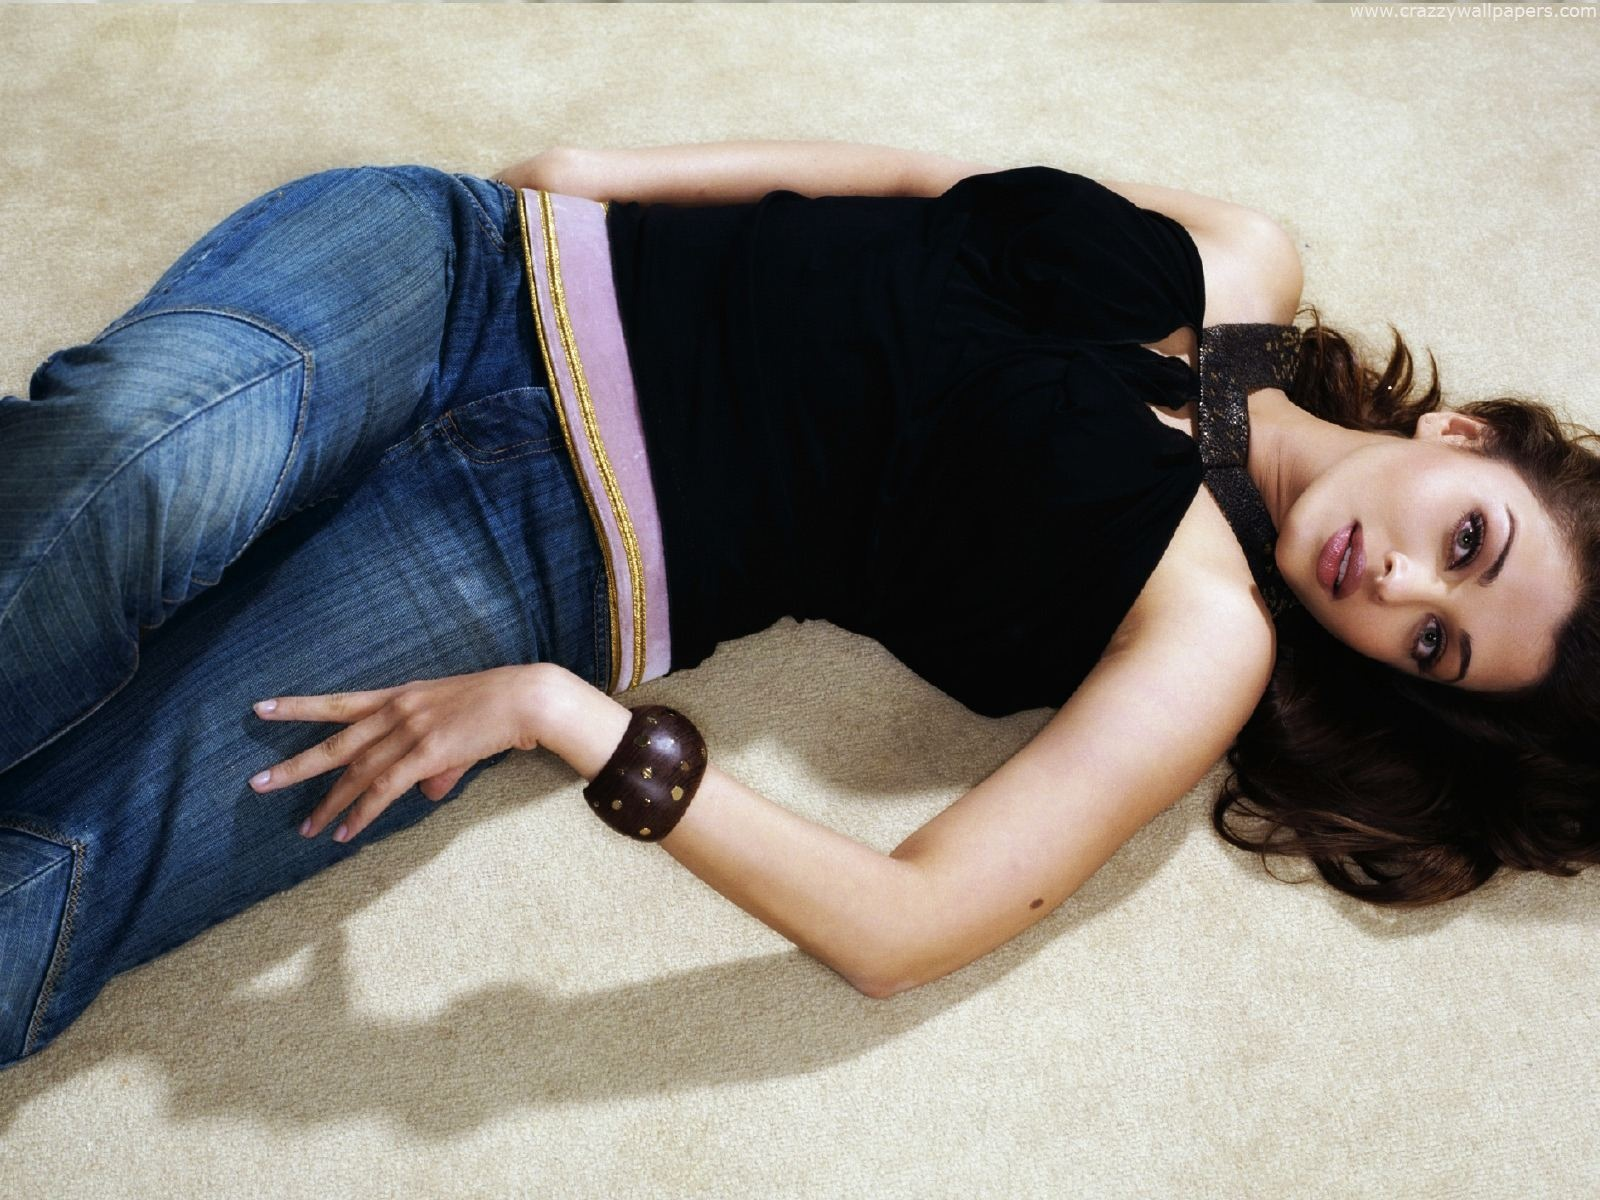 Exact babes in jeans laying